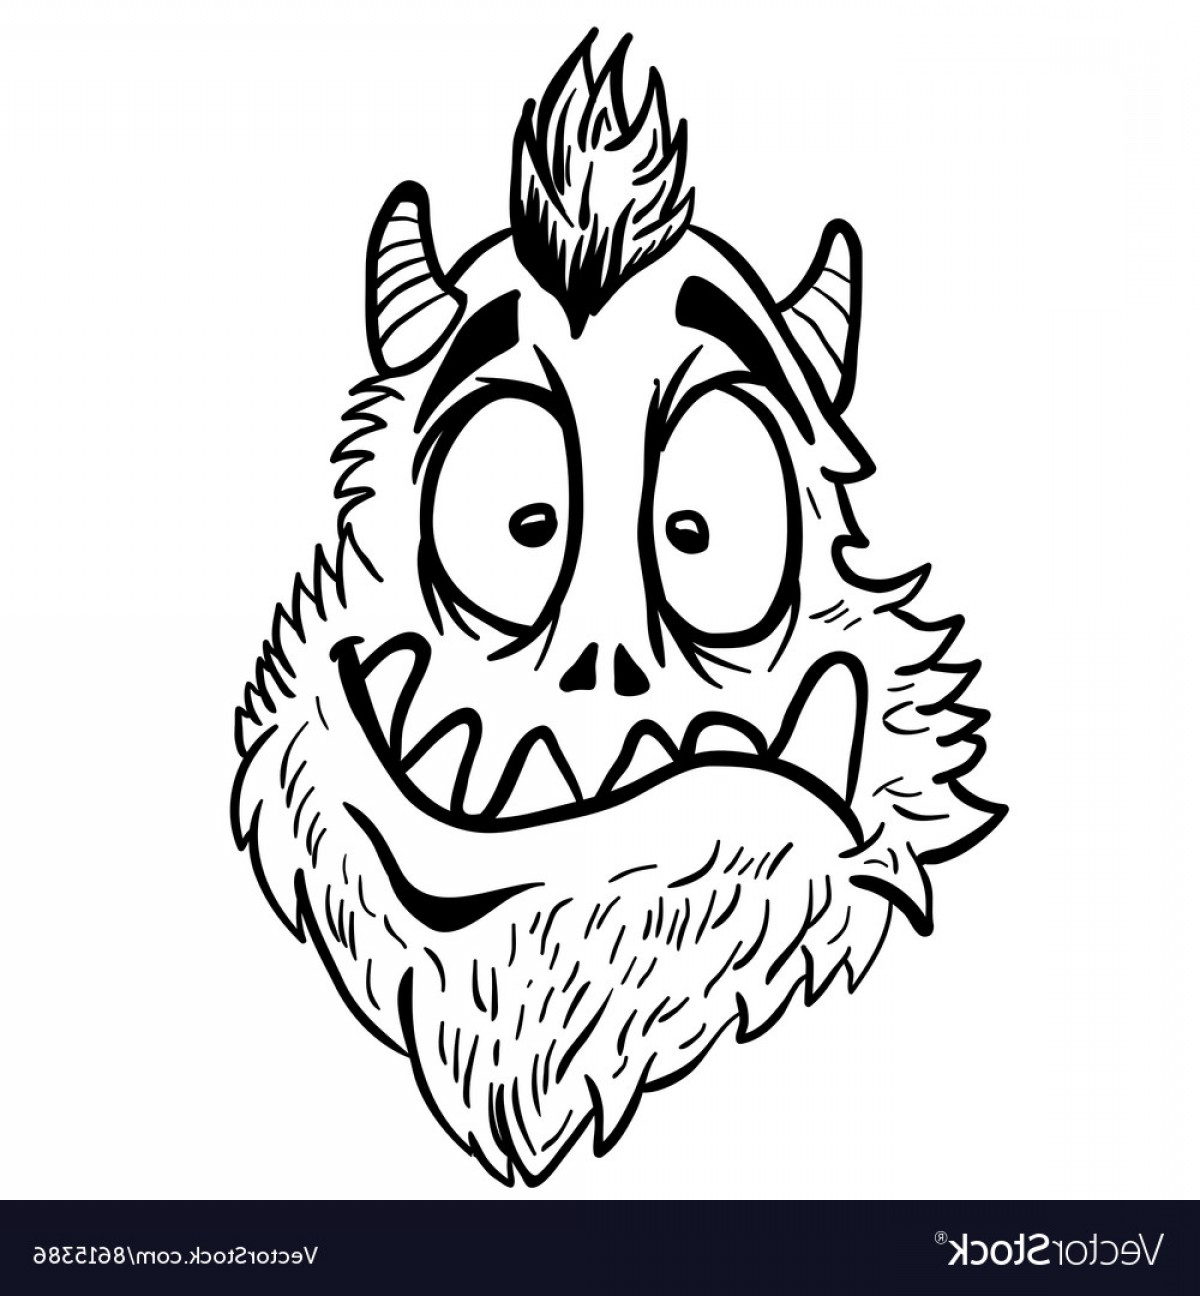 Funny Black And White Vector: Simple Black And White Funny Looking Monster Vector